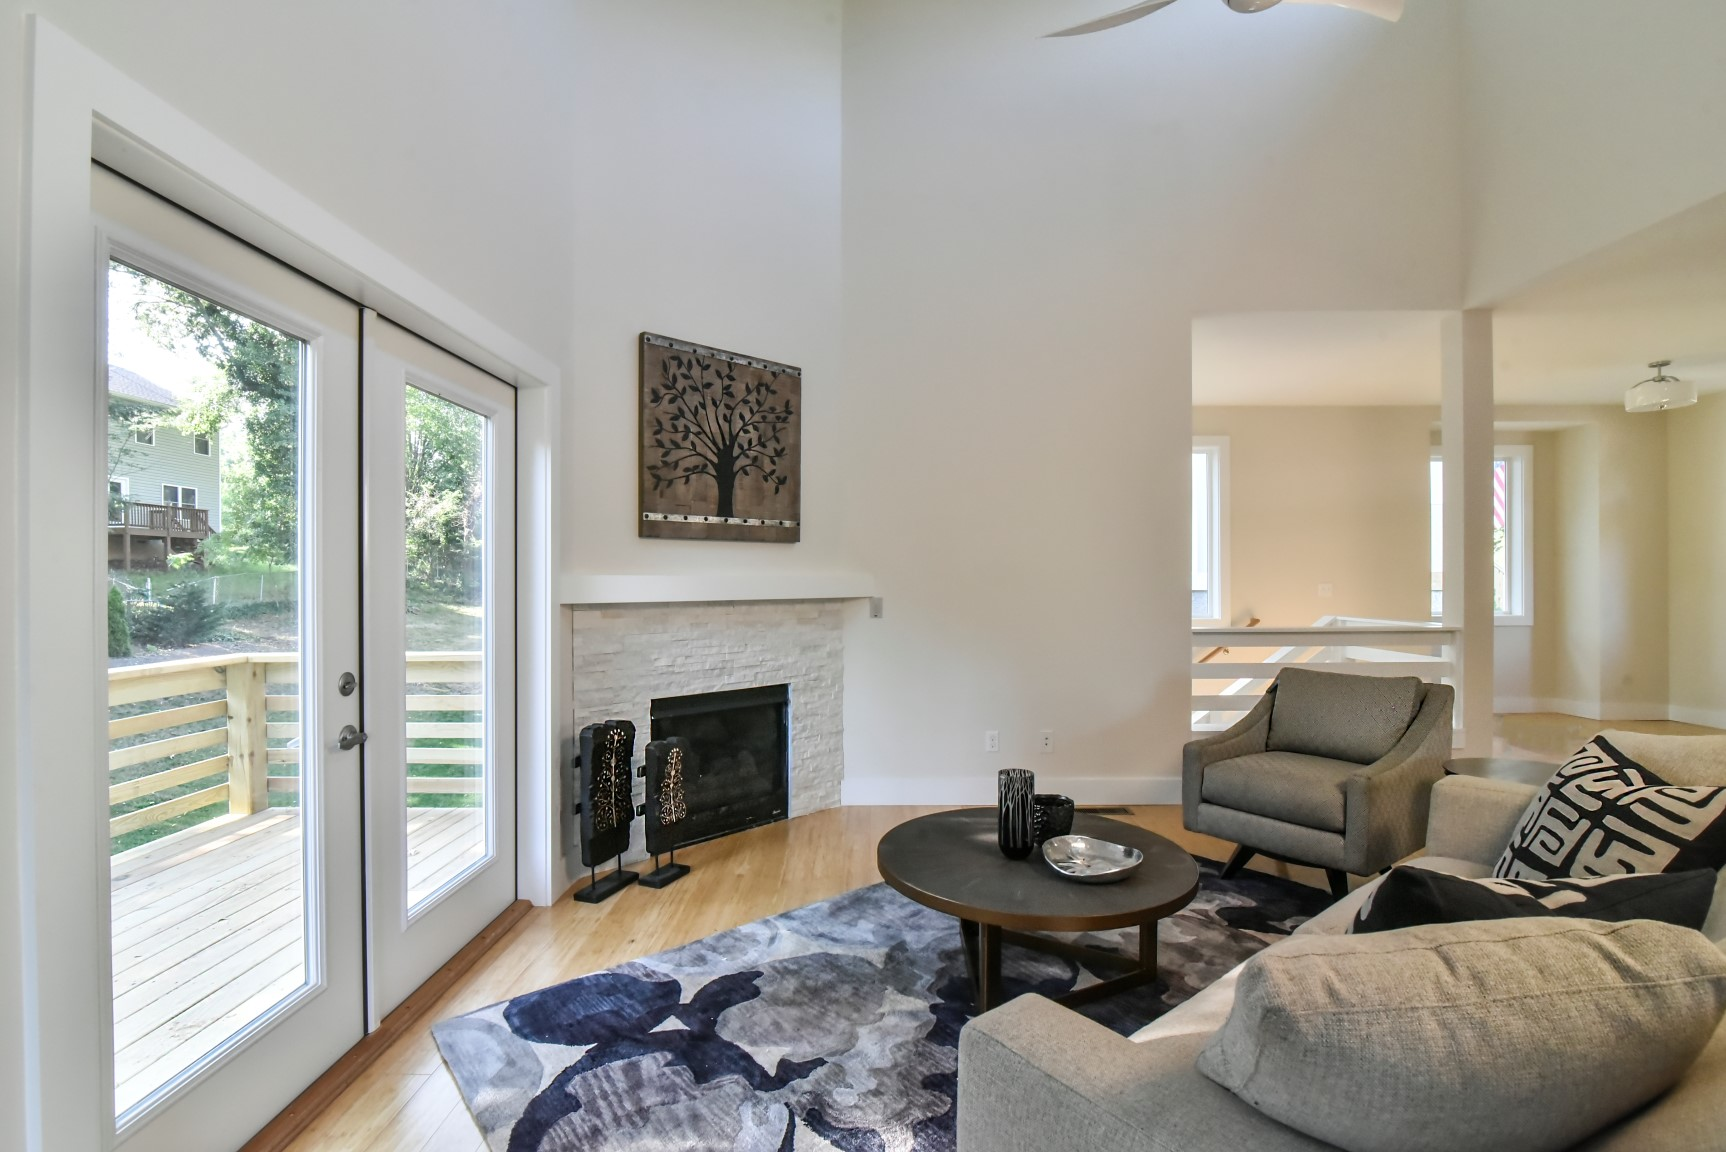 Dining/Living room opens to back porch